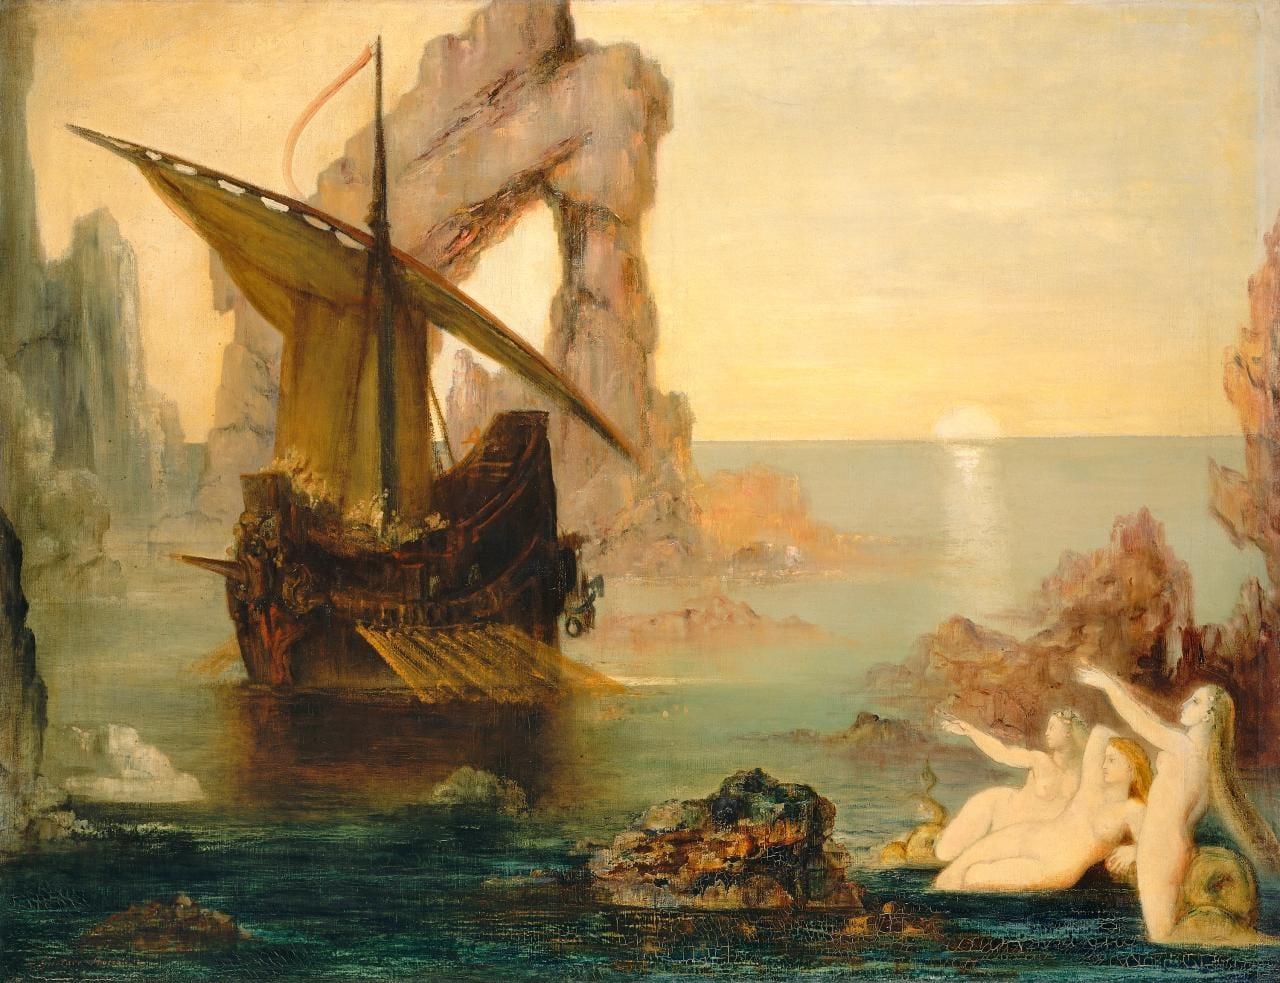 The Sirens by Gustave Moreau (1985). License: Wikimedia commons